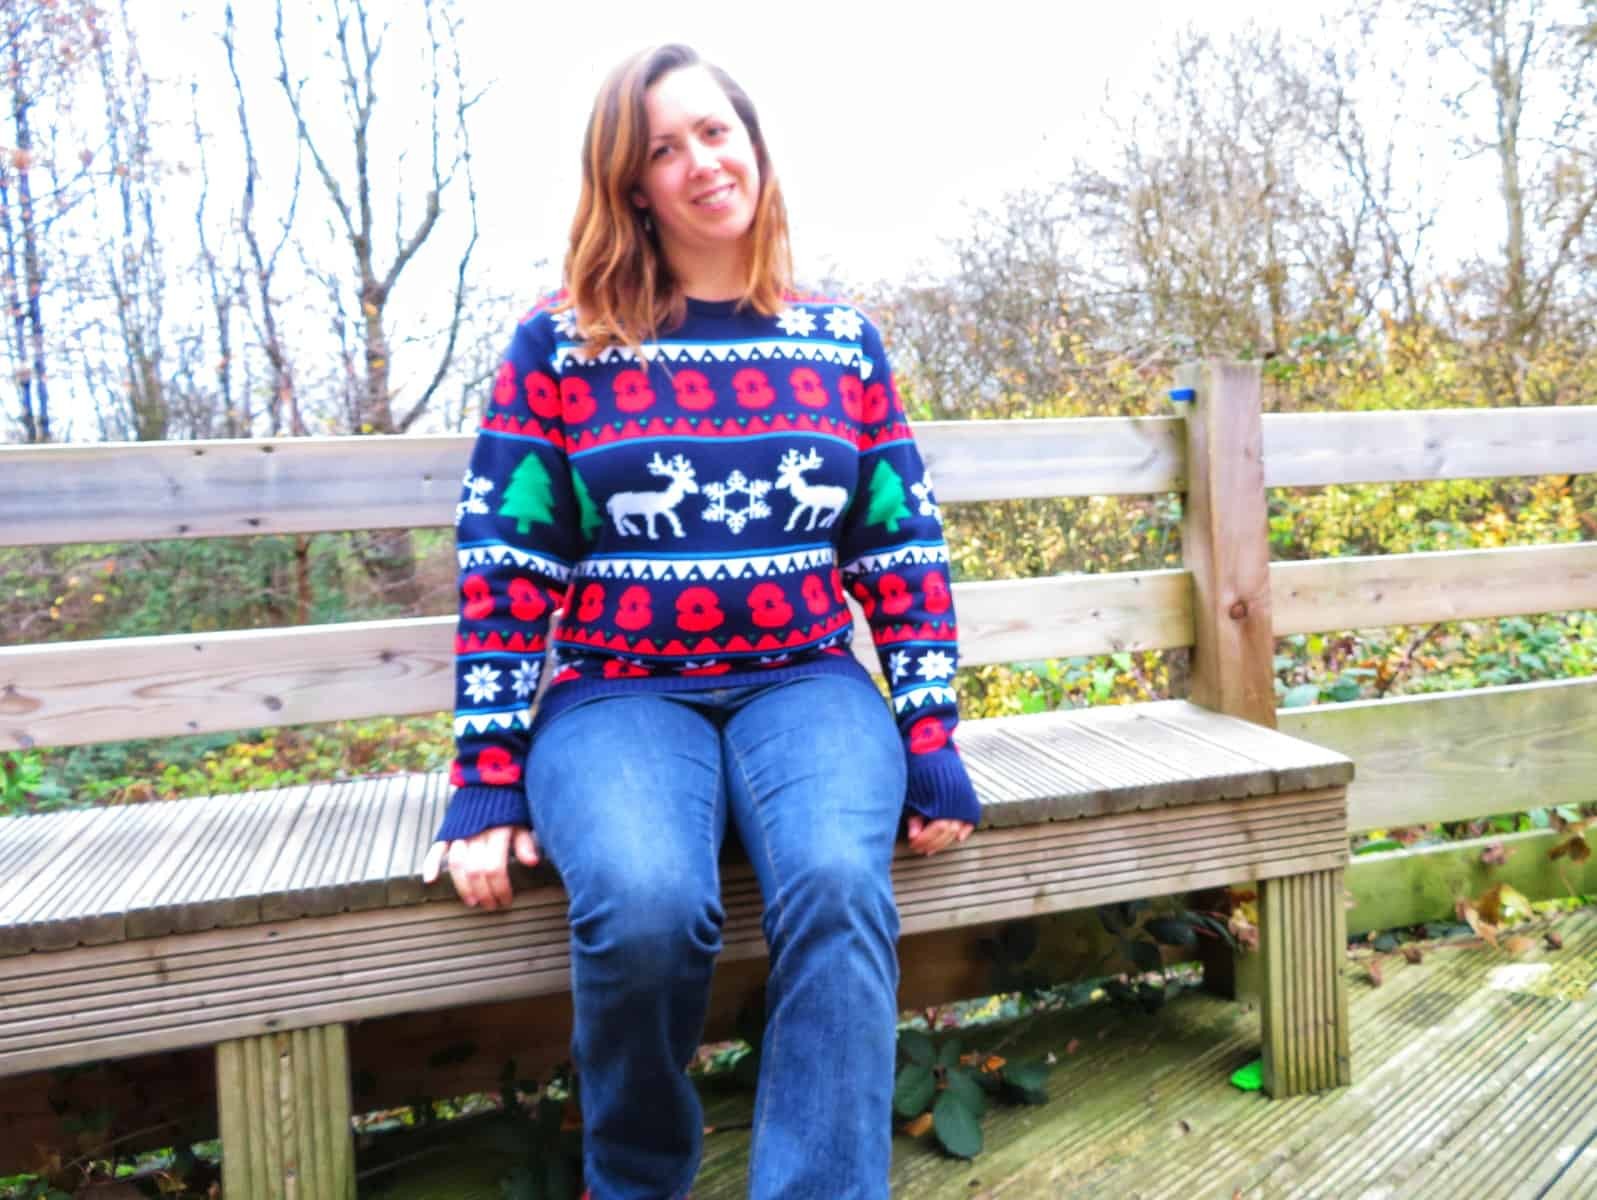 Female sat on a bench outside wearing a Christmas jumper with poppies on